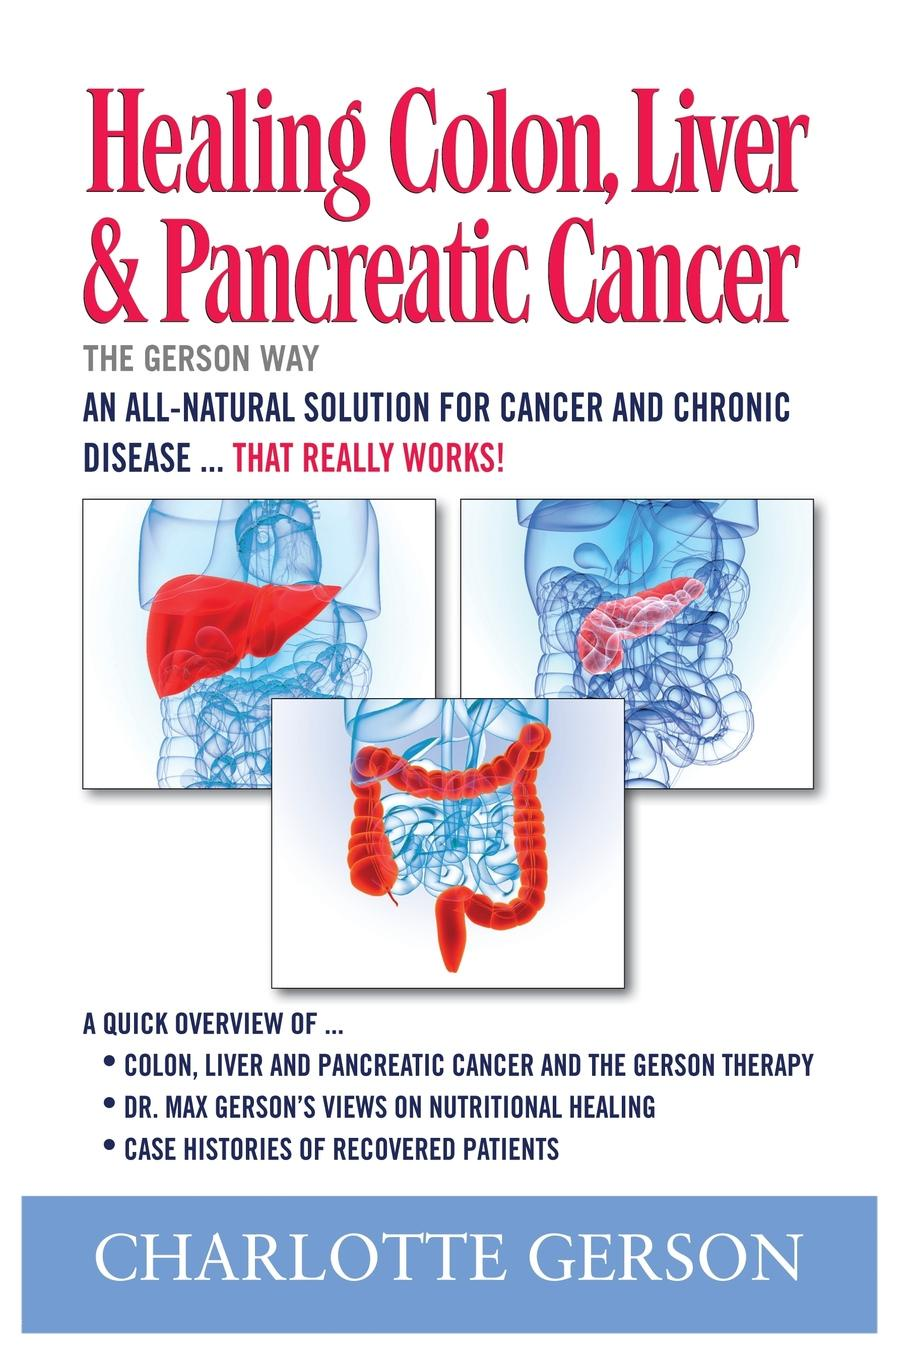 Charlotte Gerson Healing Colon, Liver & Pancreatic Cancer - The Way